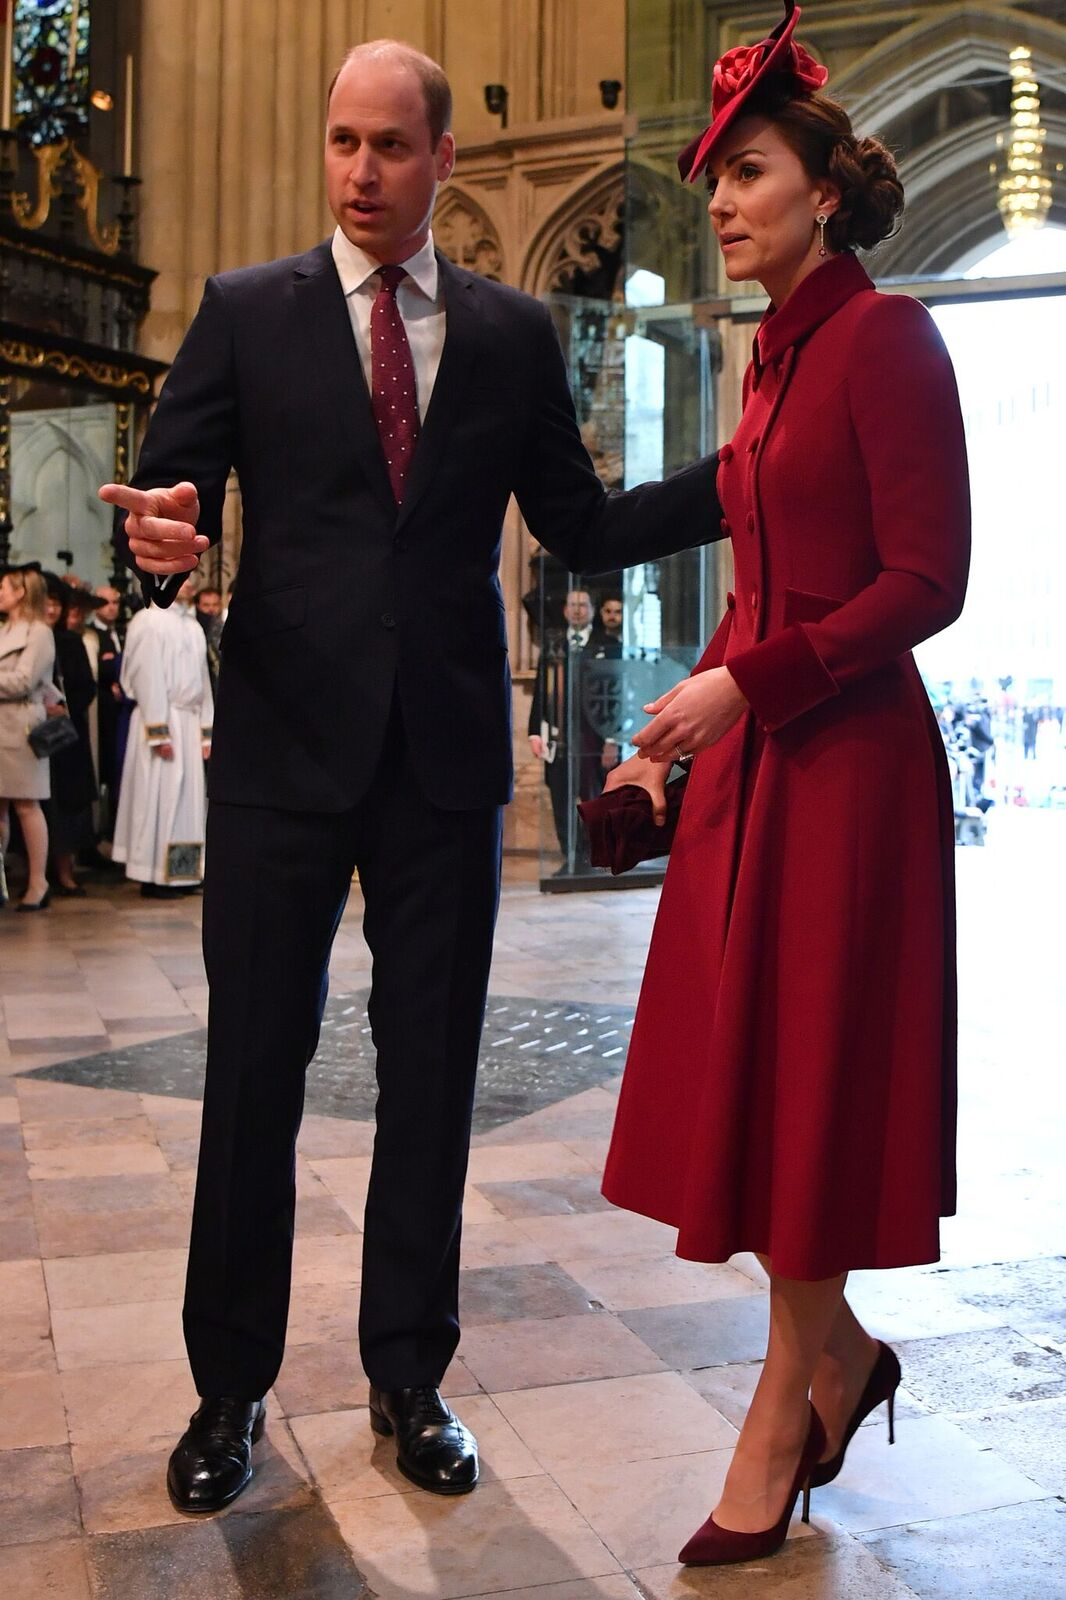 Prince William and Duchess Kate at the Commonwealth Day Service on March 9, 2020, in London, England | Photo: Ben Stansall-WPA Pool/Getty Images